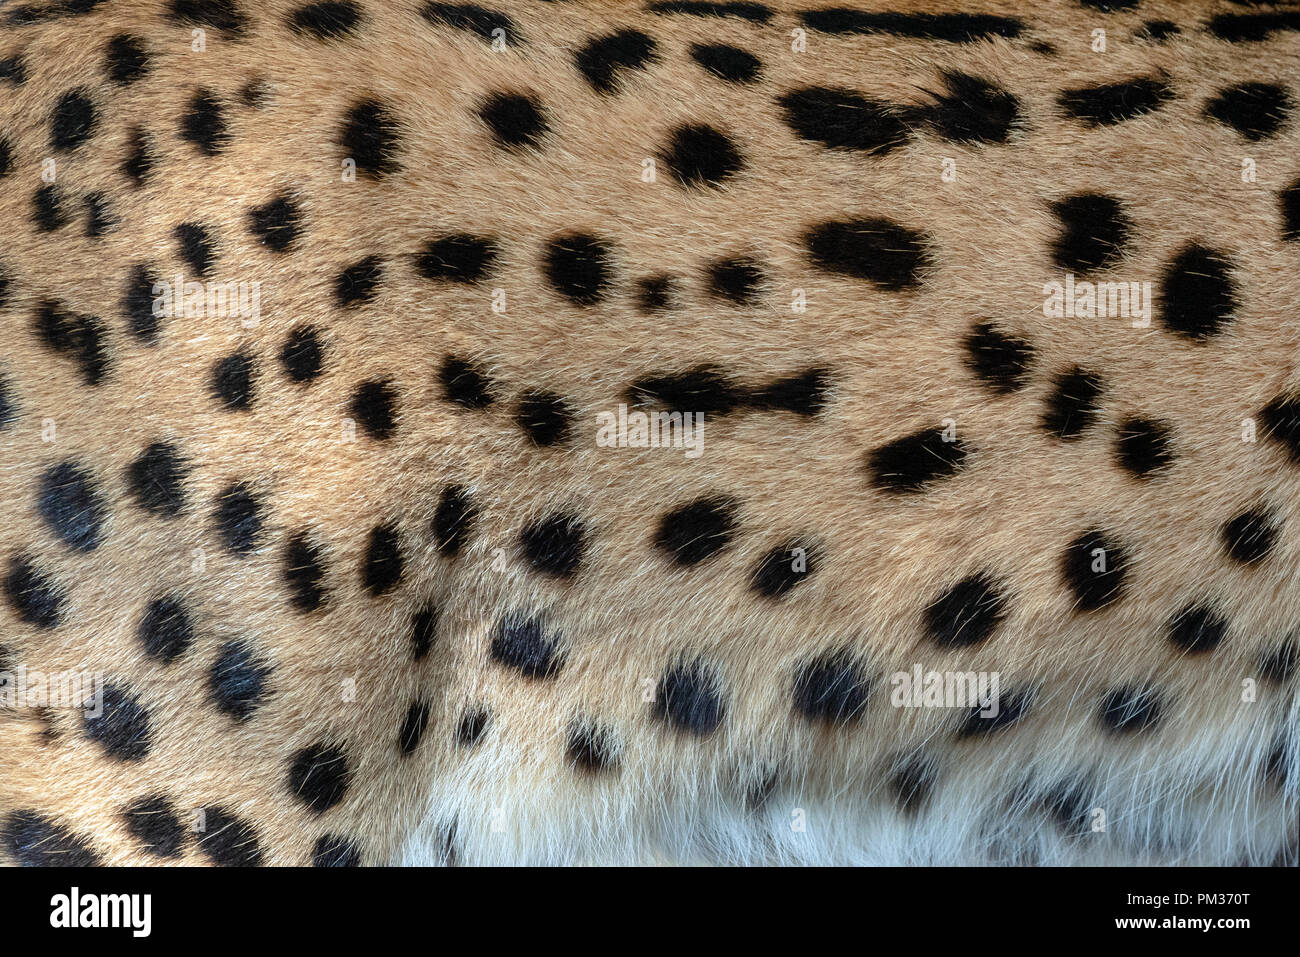 Real serval skin fur texture for background - Stock Image